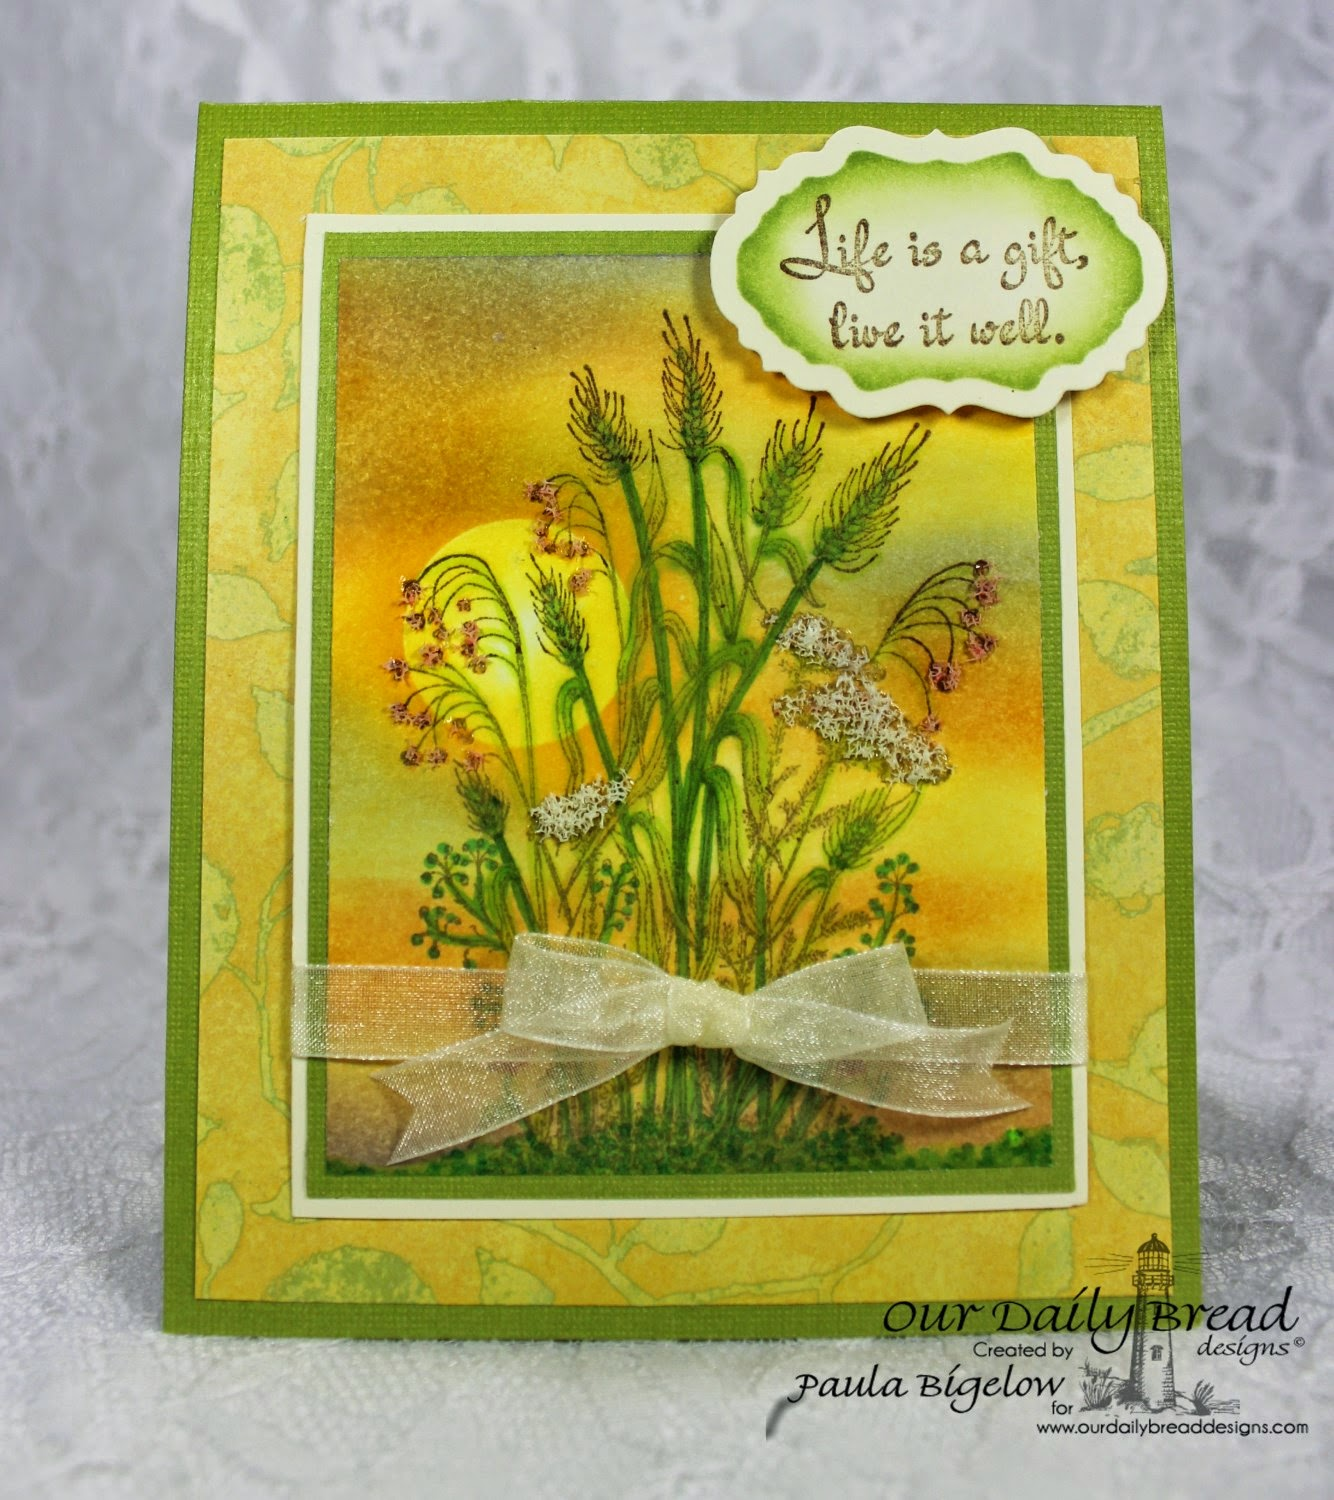 Our Daily Bread Designs, Life is a Gift, Vintage Labels, Designed by Paula Bigelow